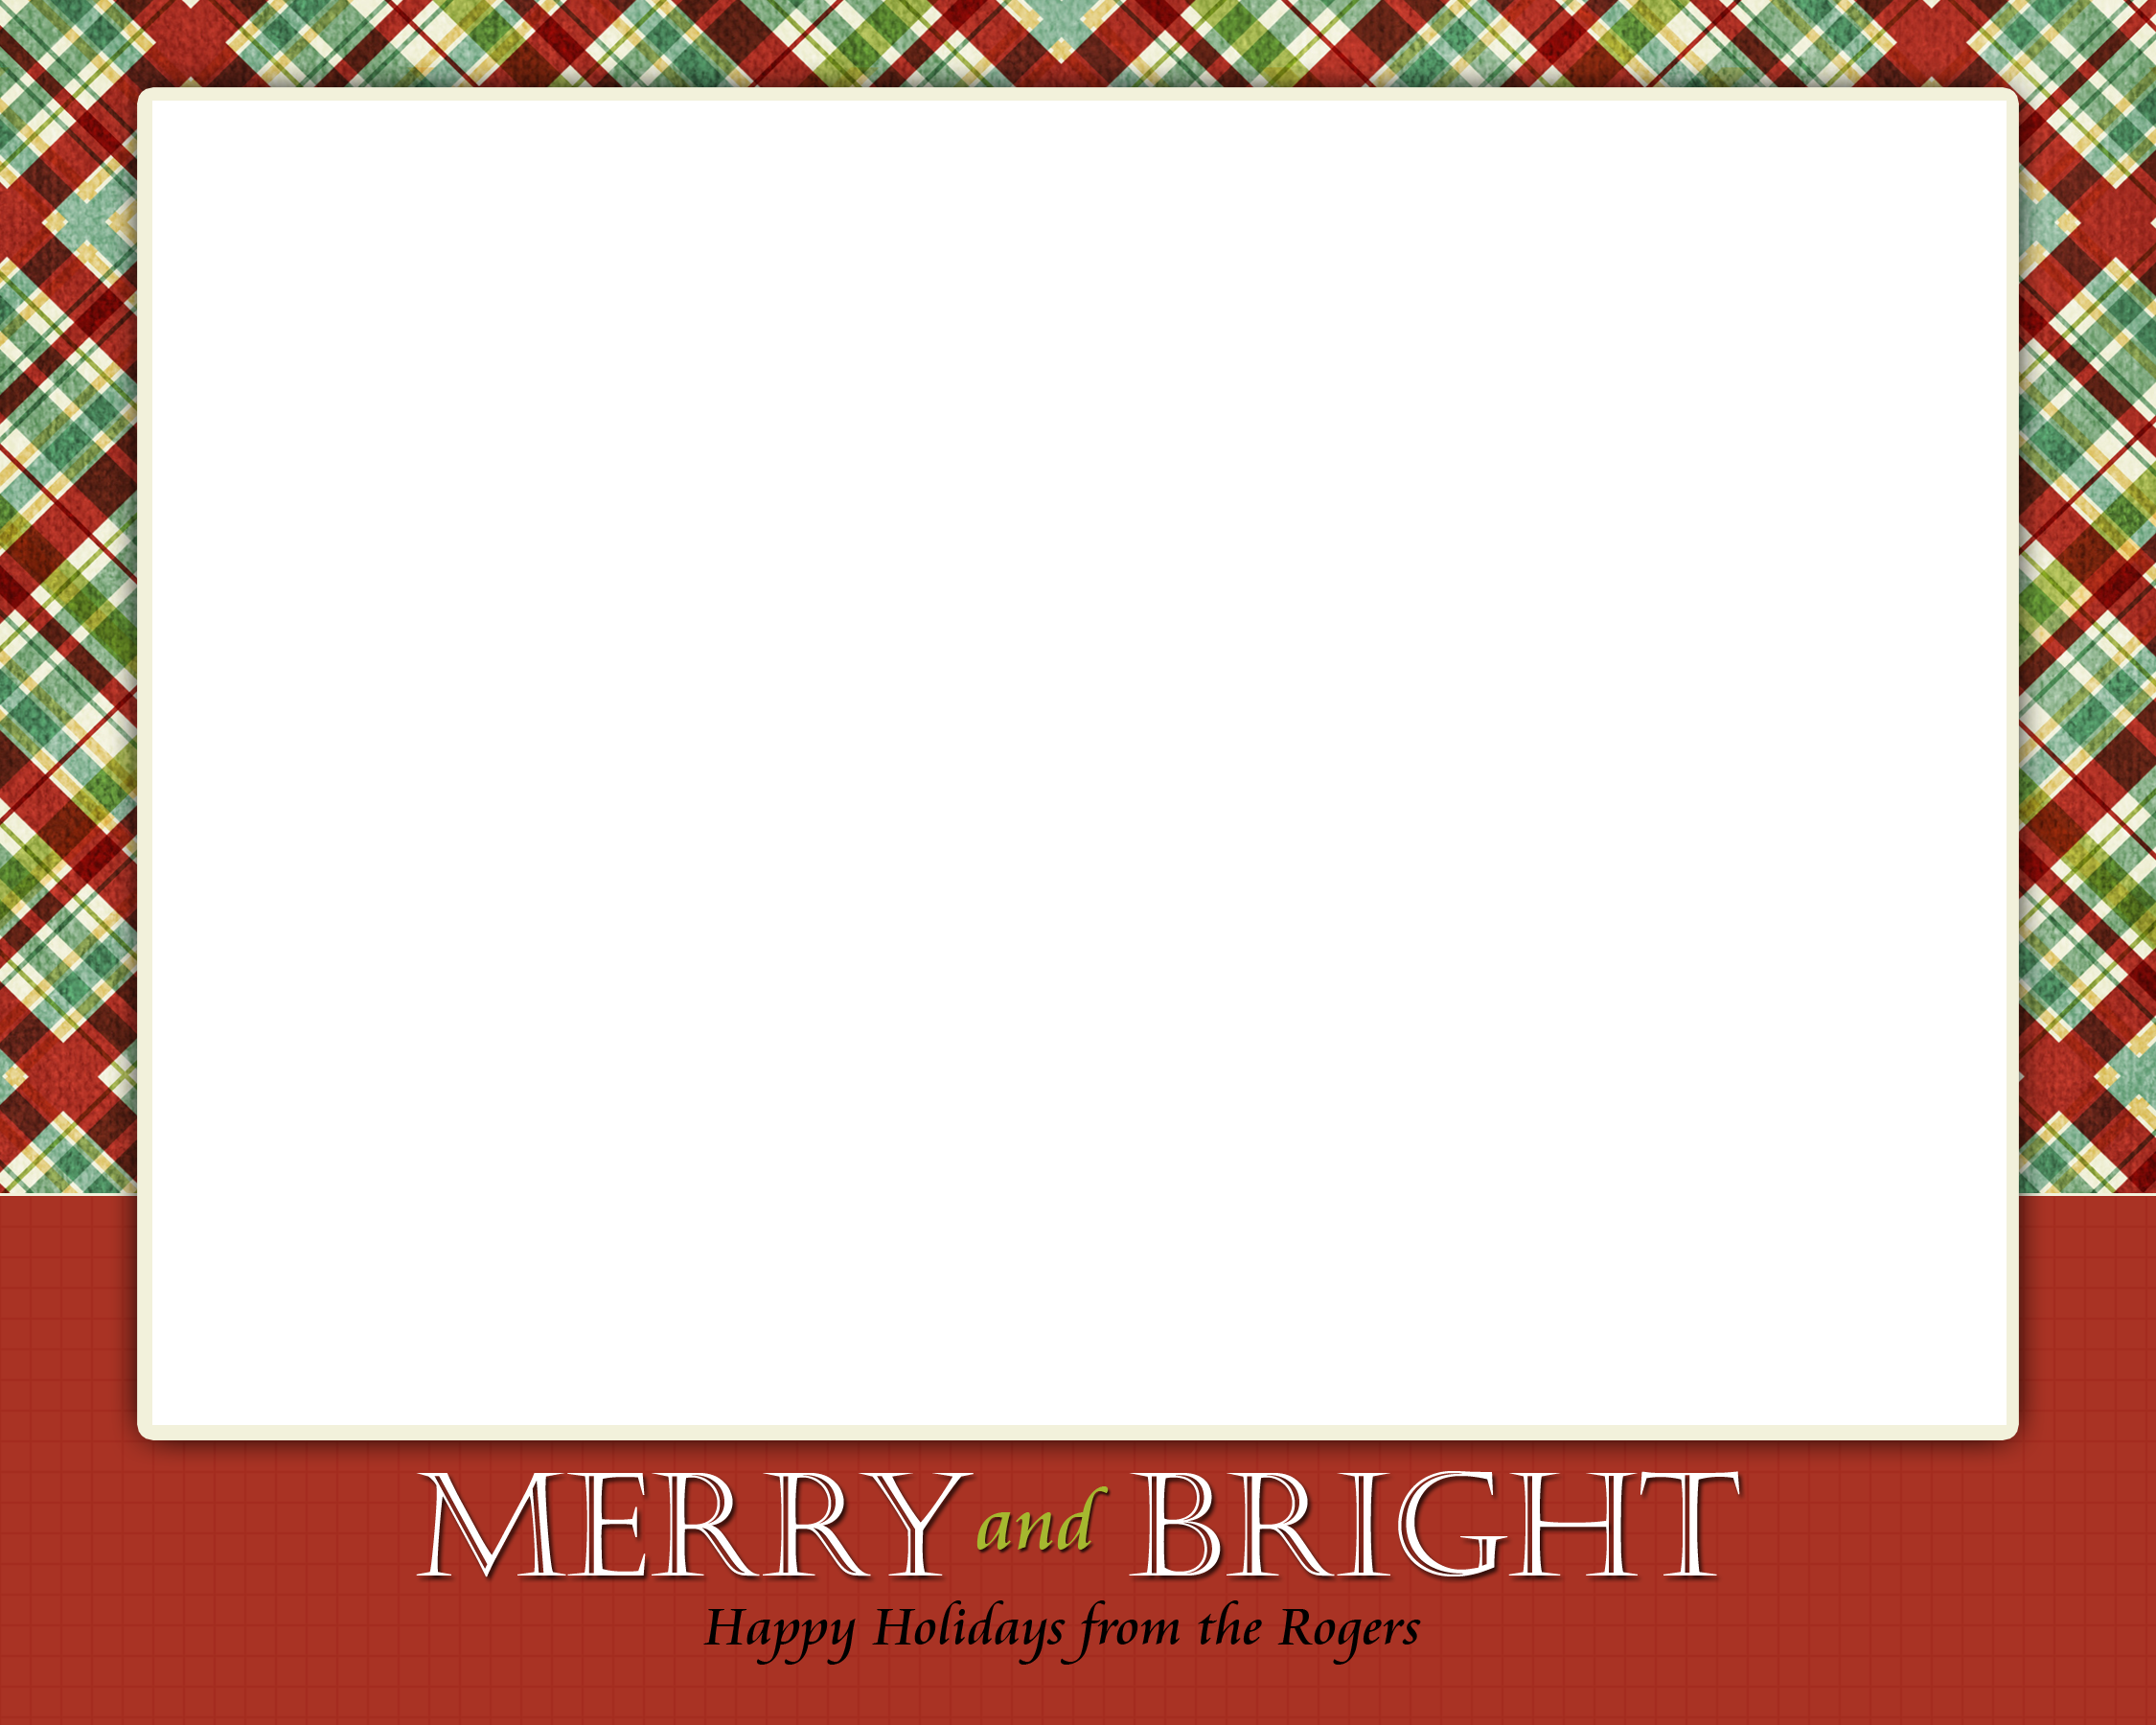 Christmas-Card-Template simple | Card Design | Pinterest ...